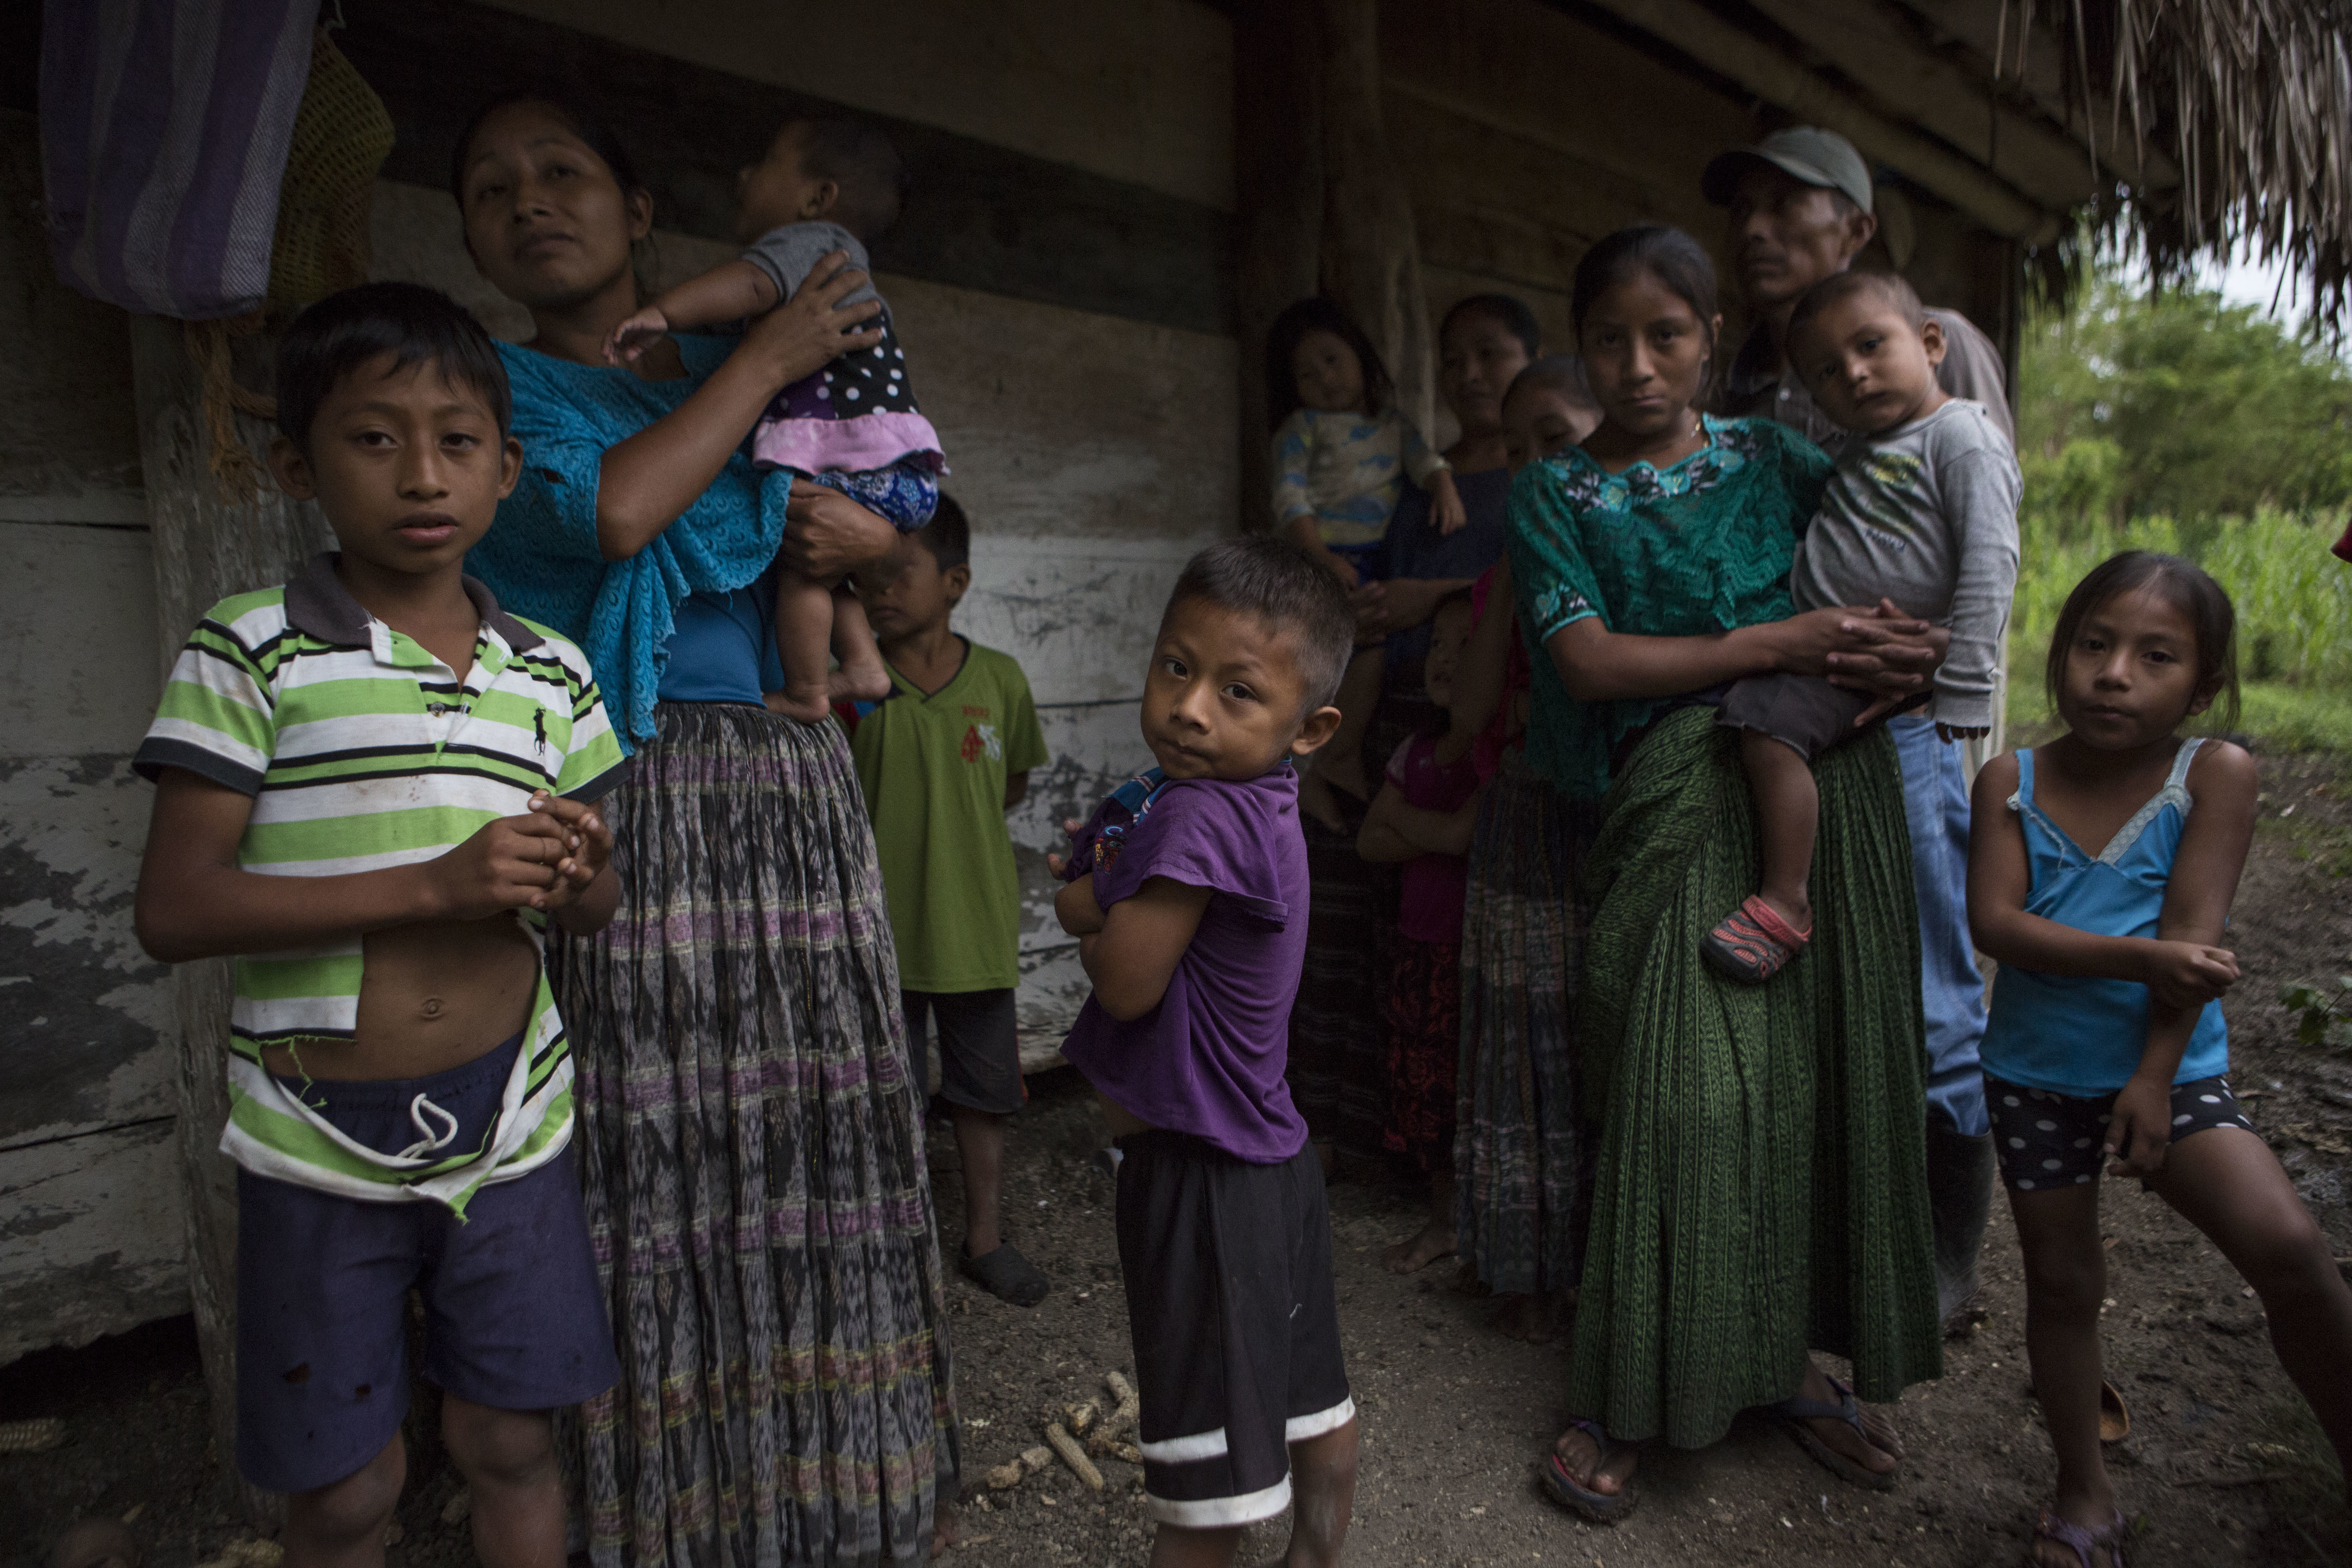 Members of the Caal Maquin family and neighbors stand in front of Claudia Maquin's house in Raxruha, Guatemala, Dec. 15, 2018. Claudia Maquin's daughter, 7-year-old Jakelin CaalMaquin, died in a Texas hospital, two days after being taken into custo...